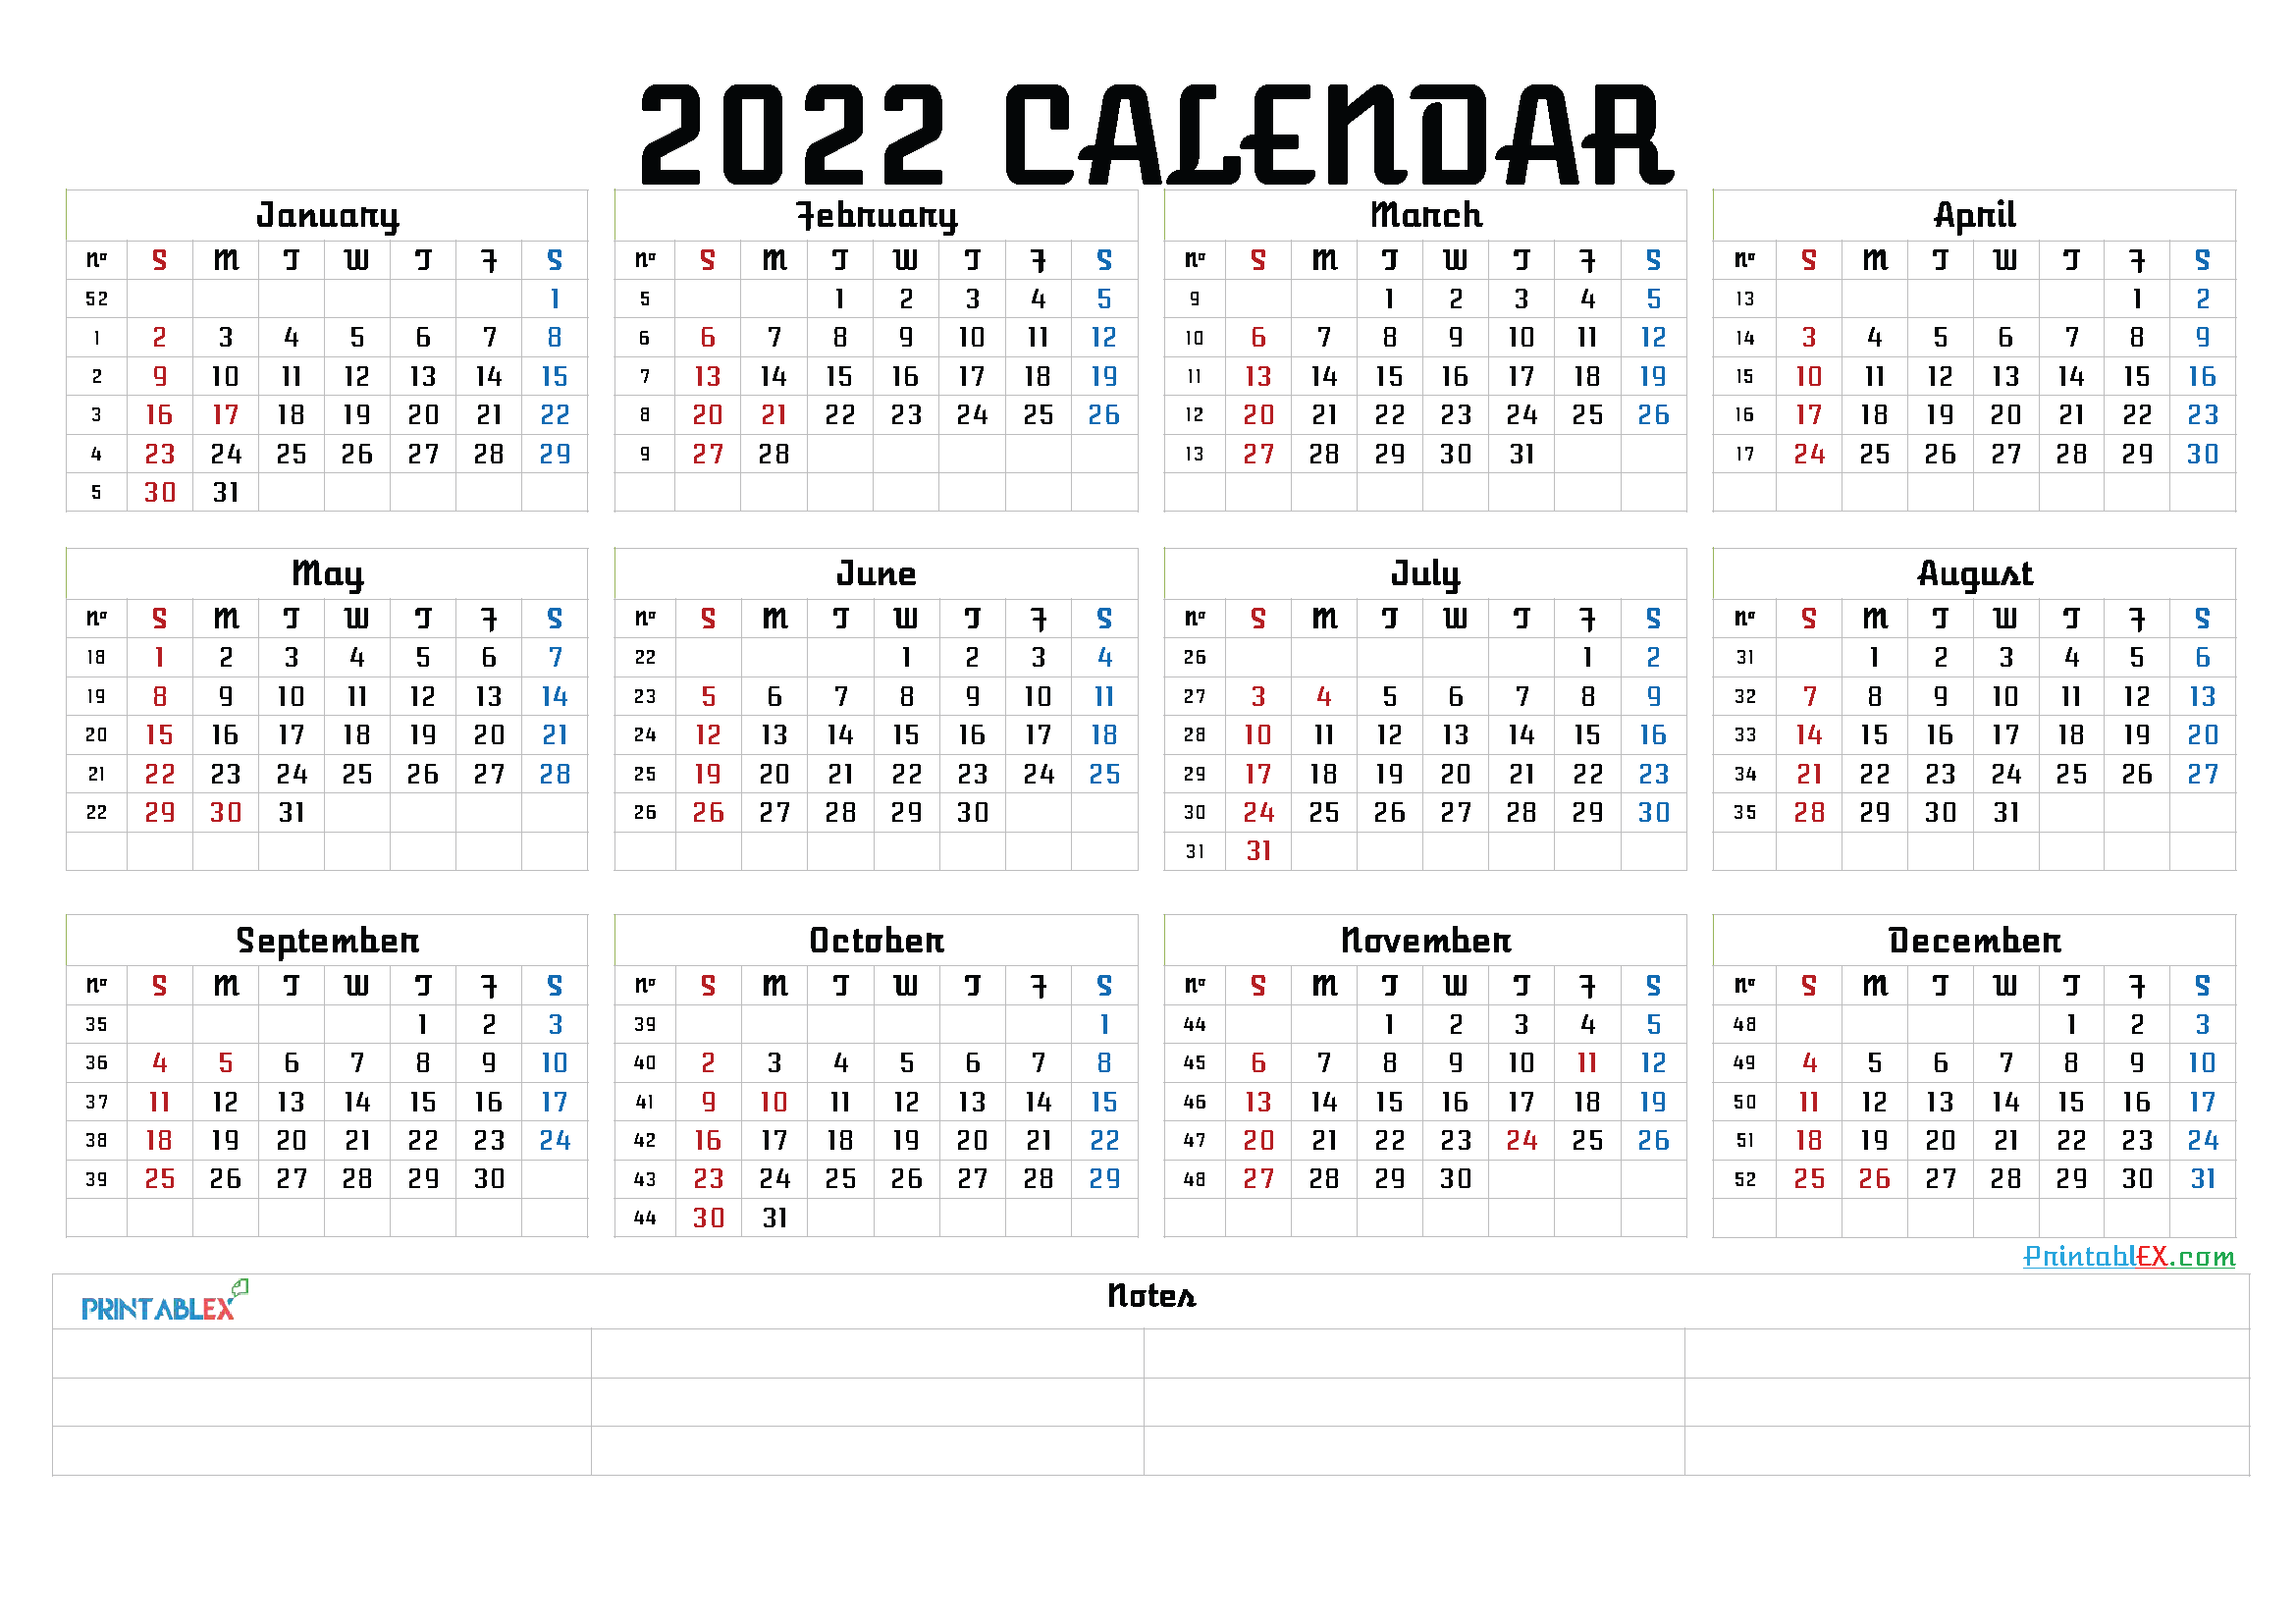 Free Printable 2022 Calendar by Month (Font: georg)